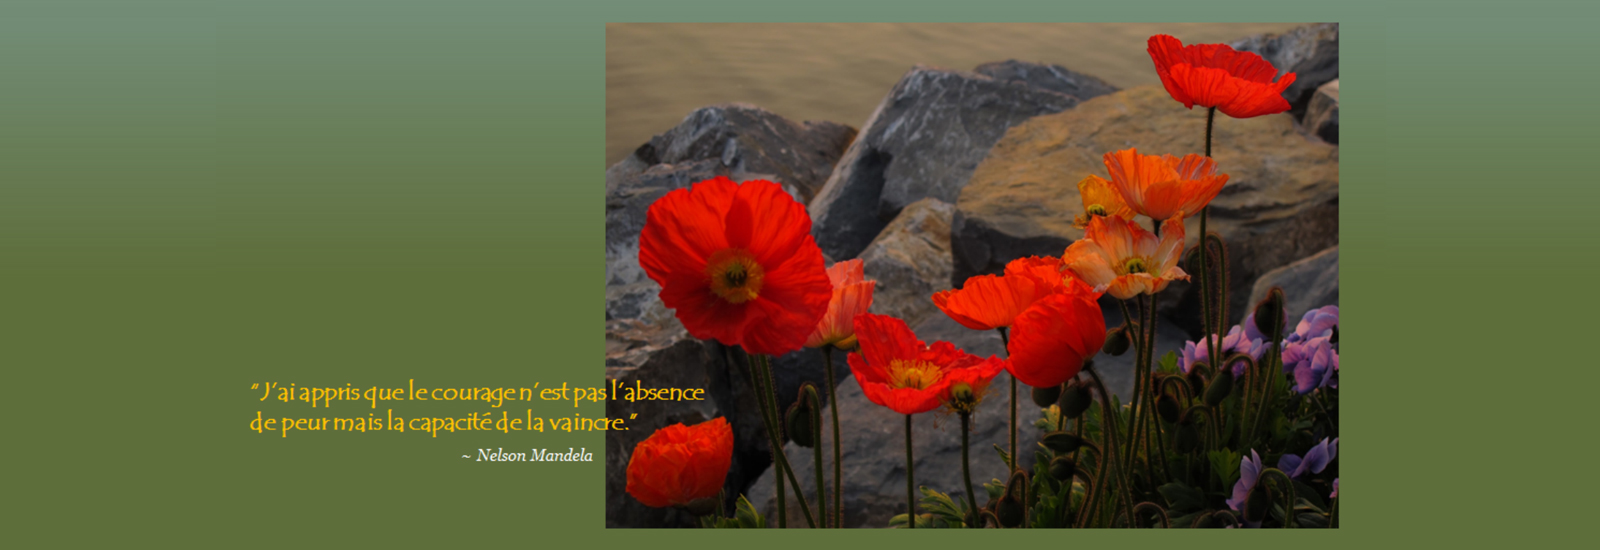 french-slide-1-poppies-and-rocks